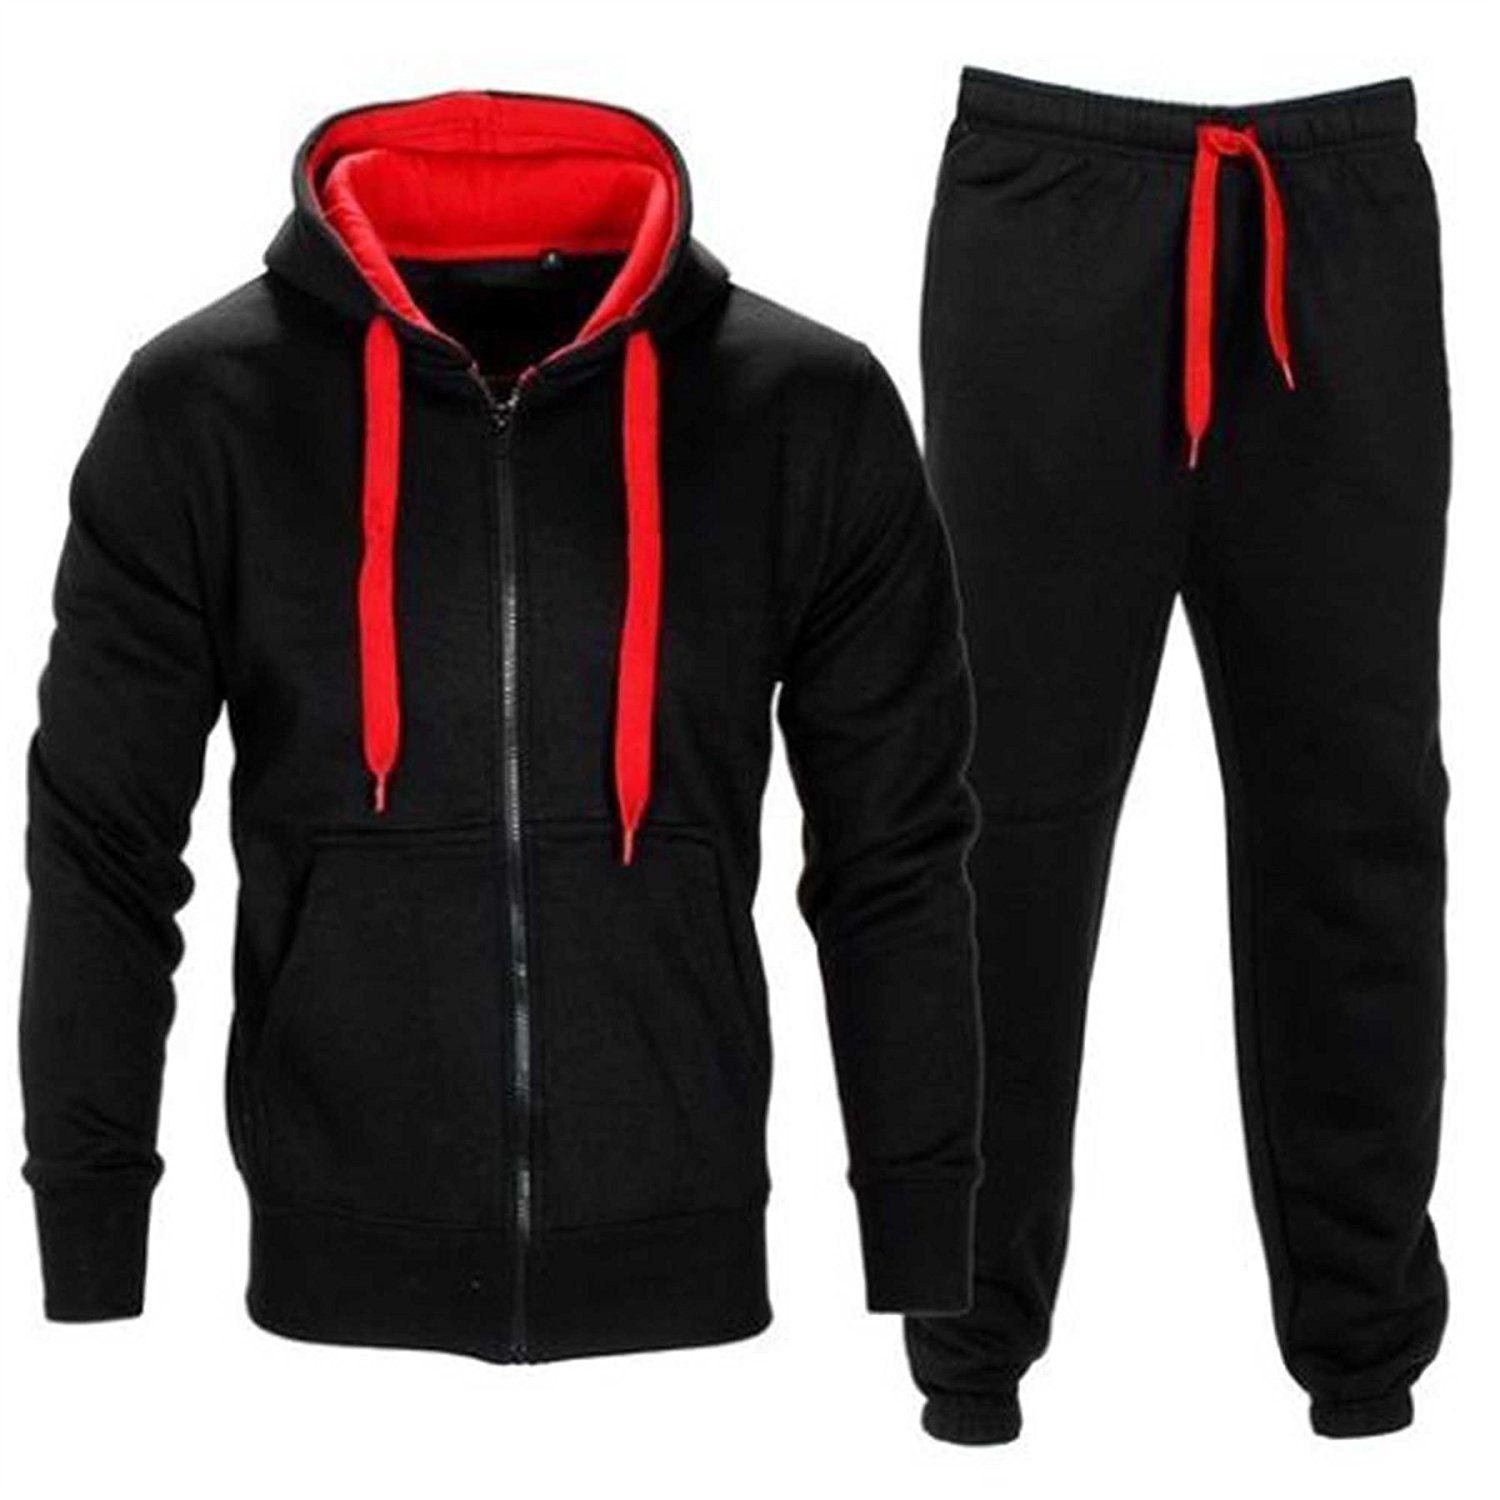 Tracksuit Men  2020 New Men's Casual Slimming Hip Hop Hooded Solid Color Sports Men's Suit